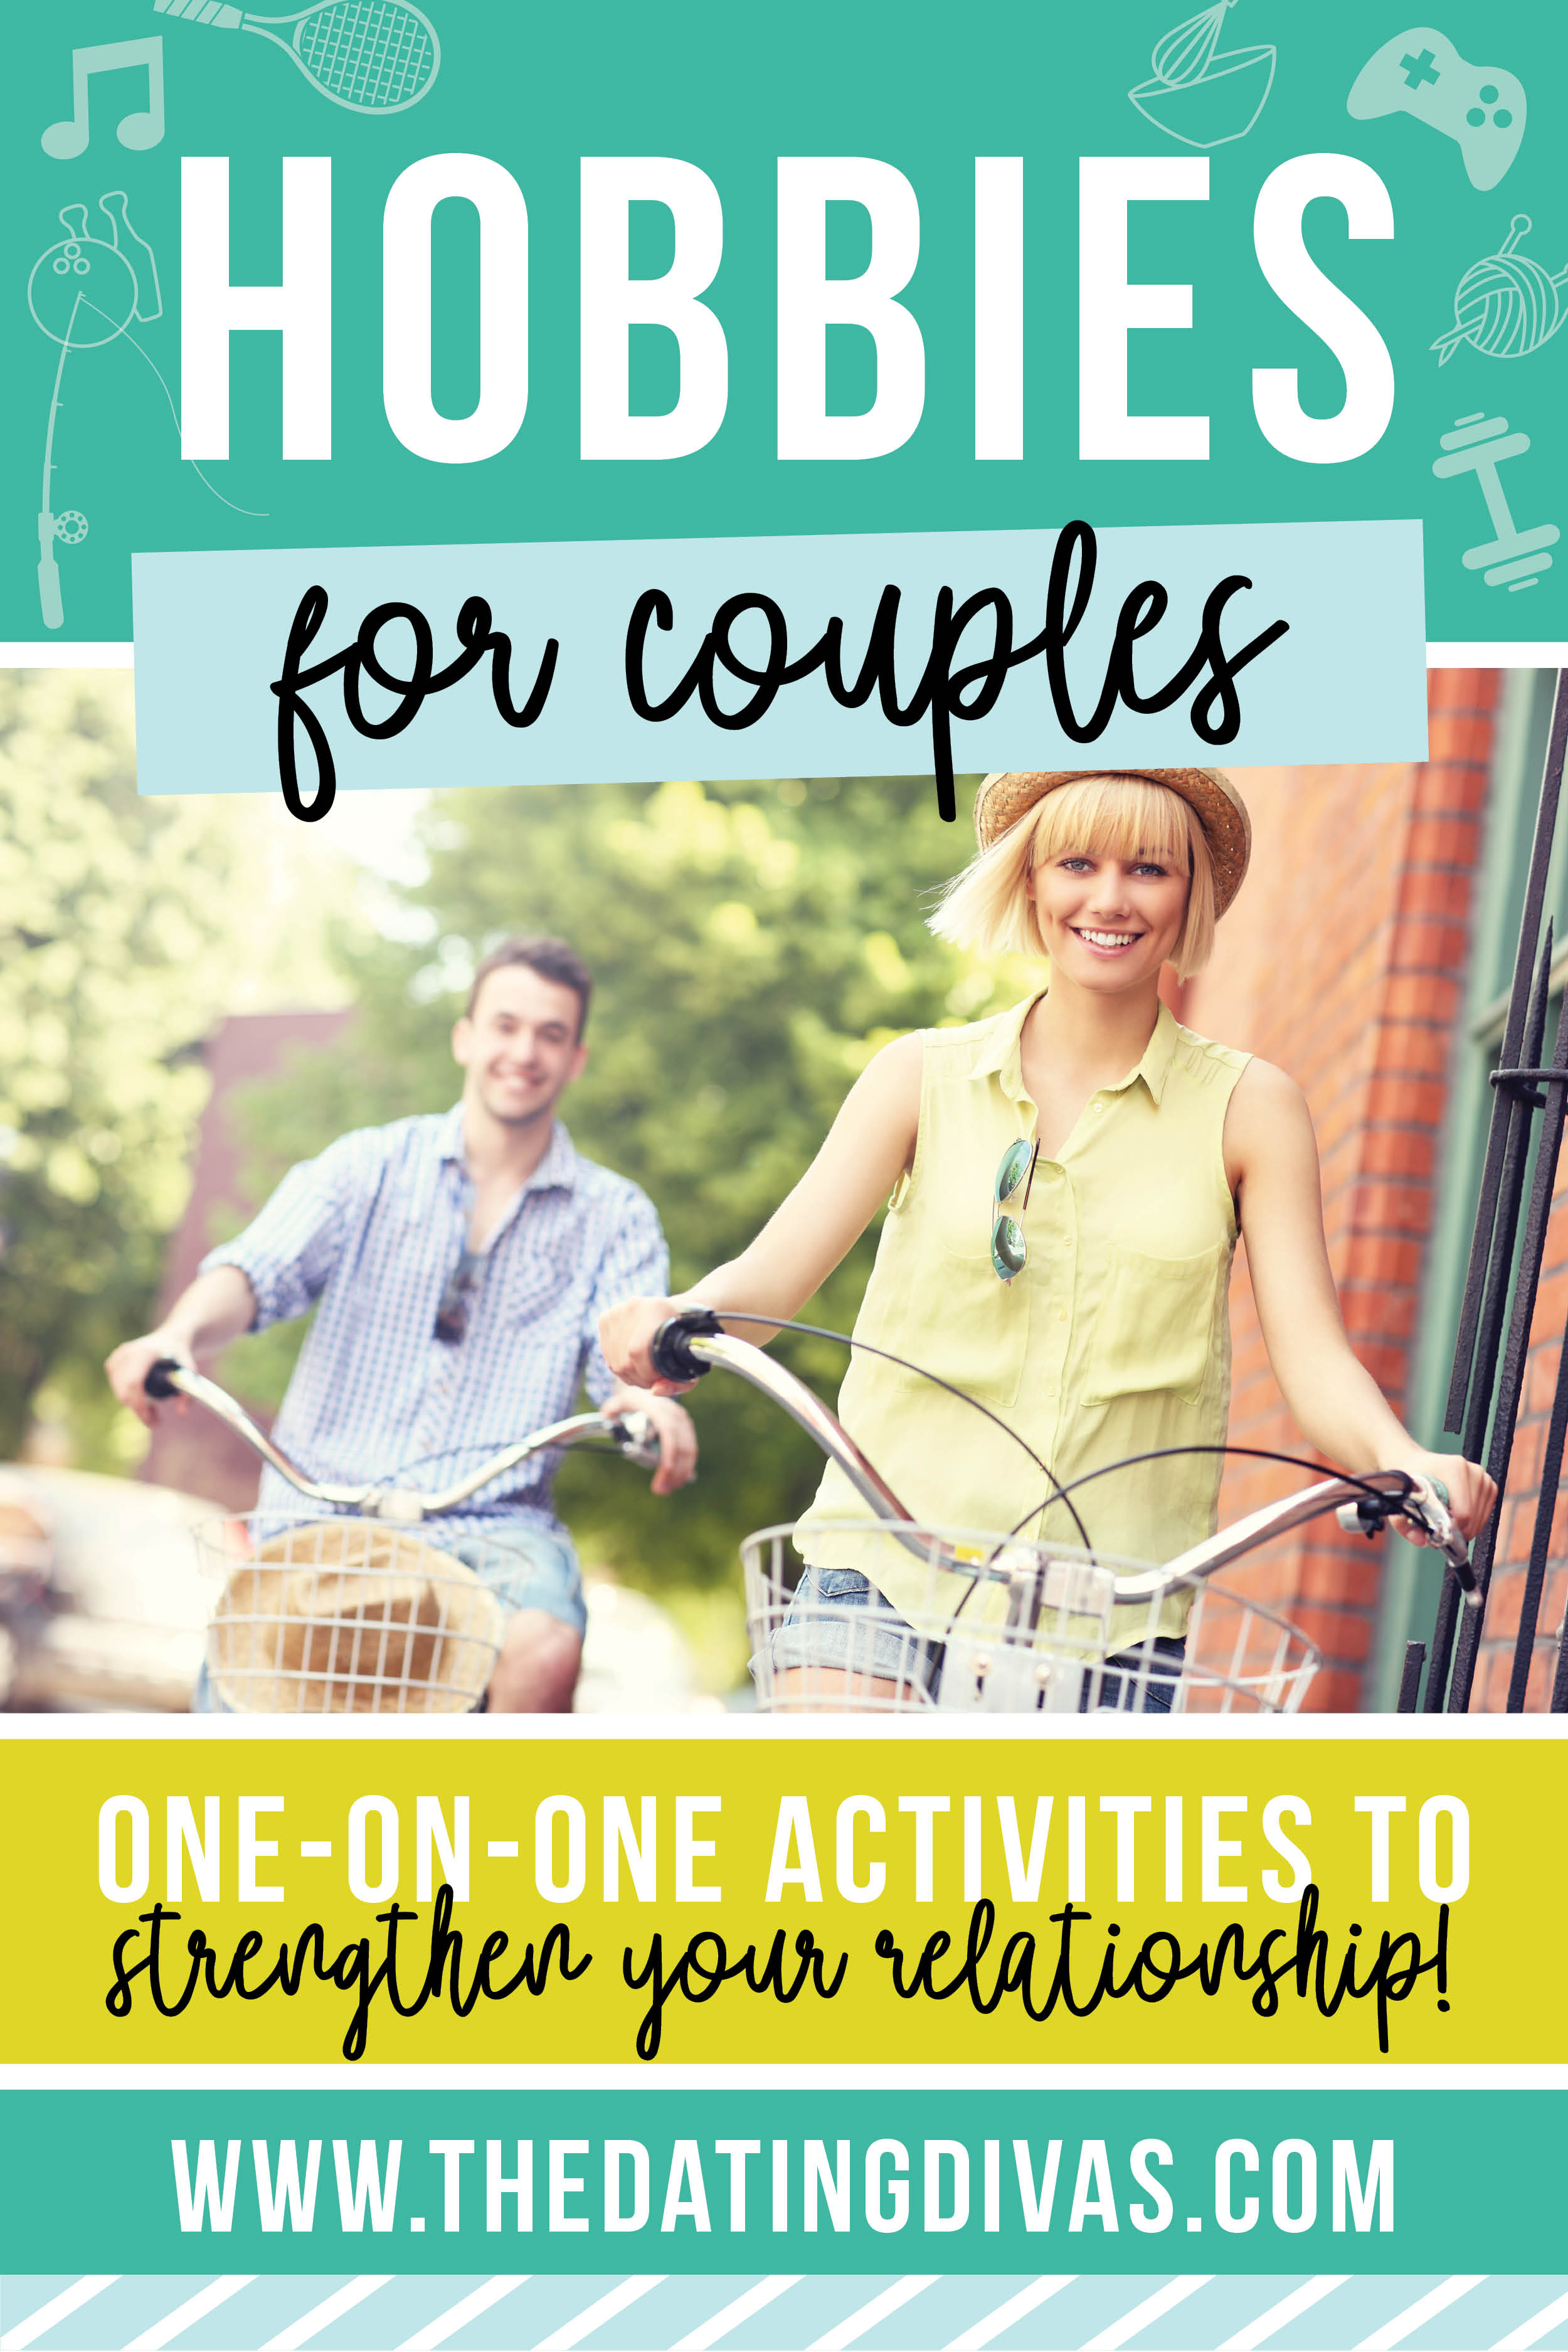 Hobbies and Couple Activities